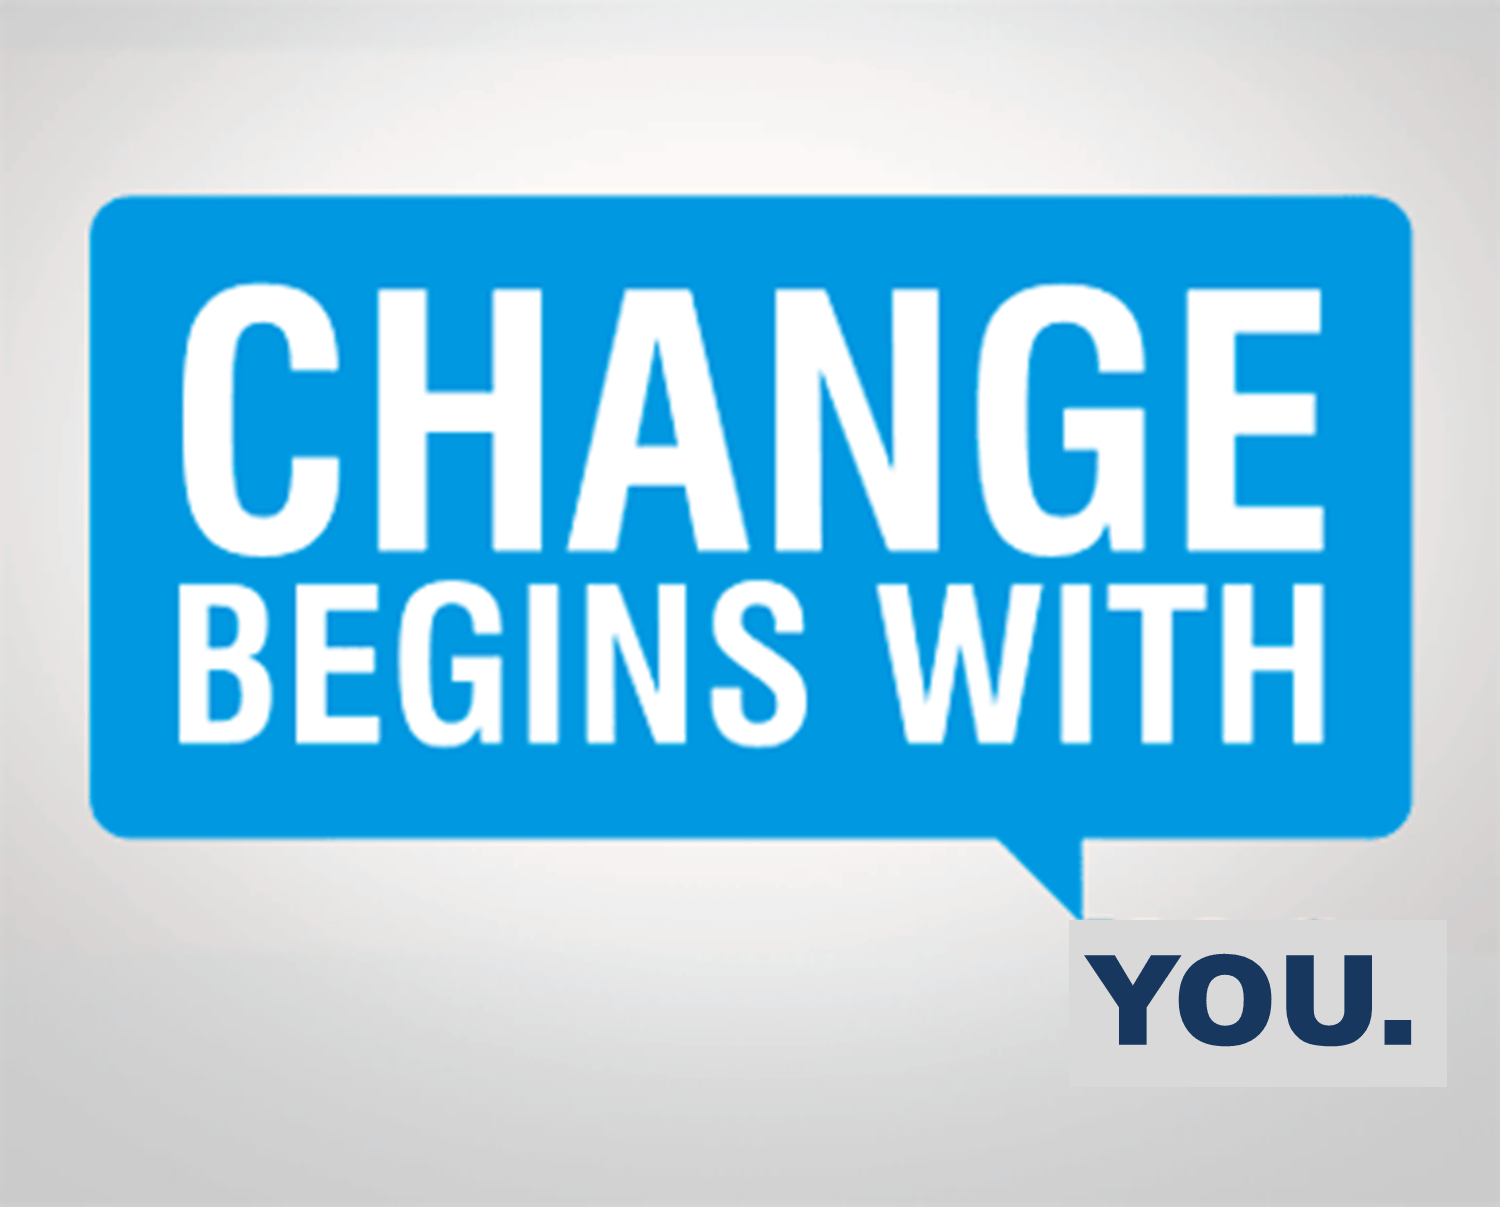 12 deadly sins of change implementation in organizations -Change begins with you